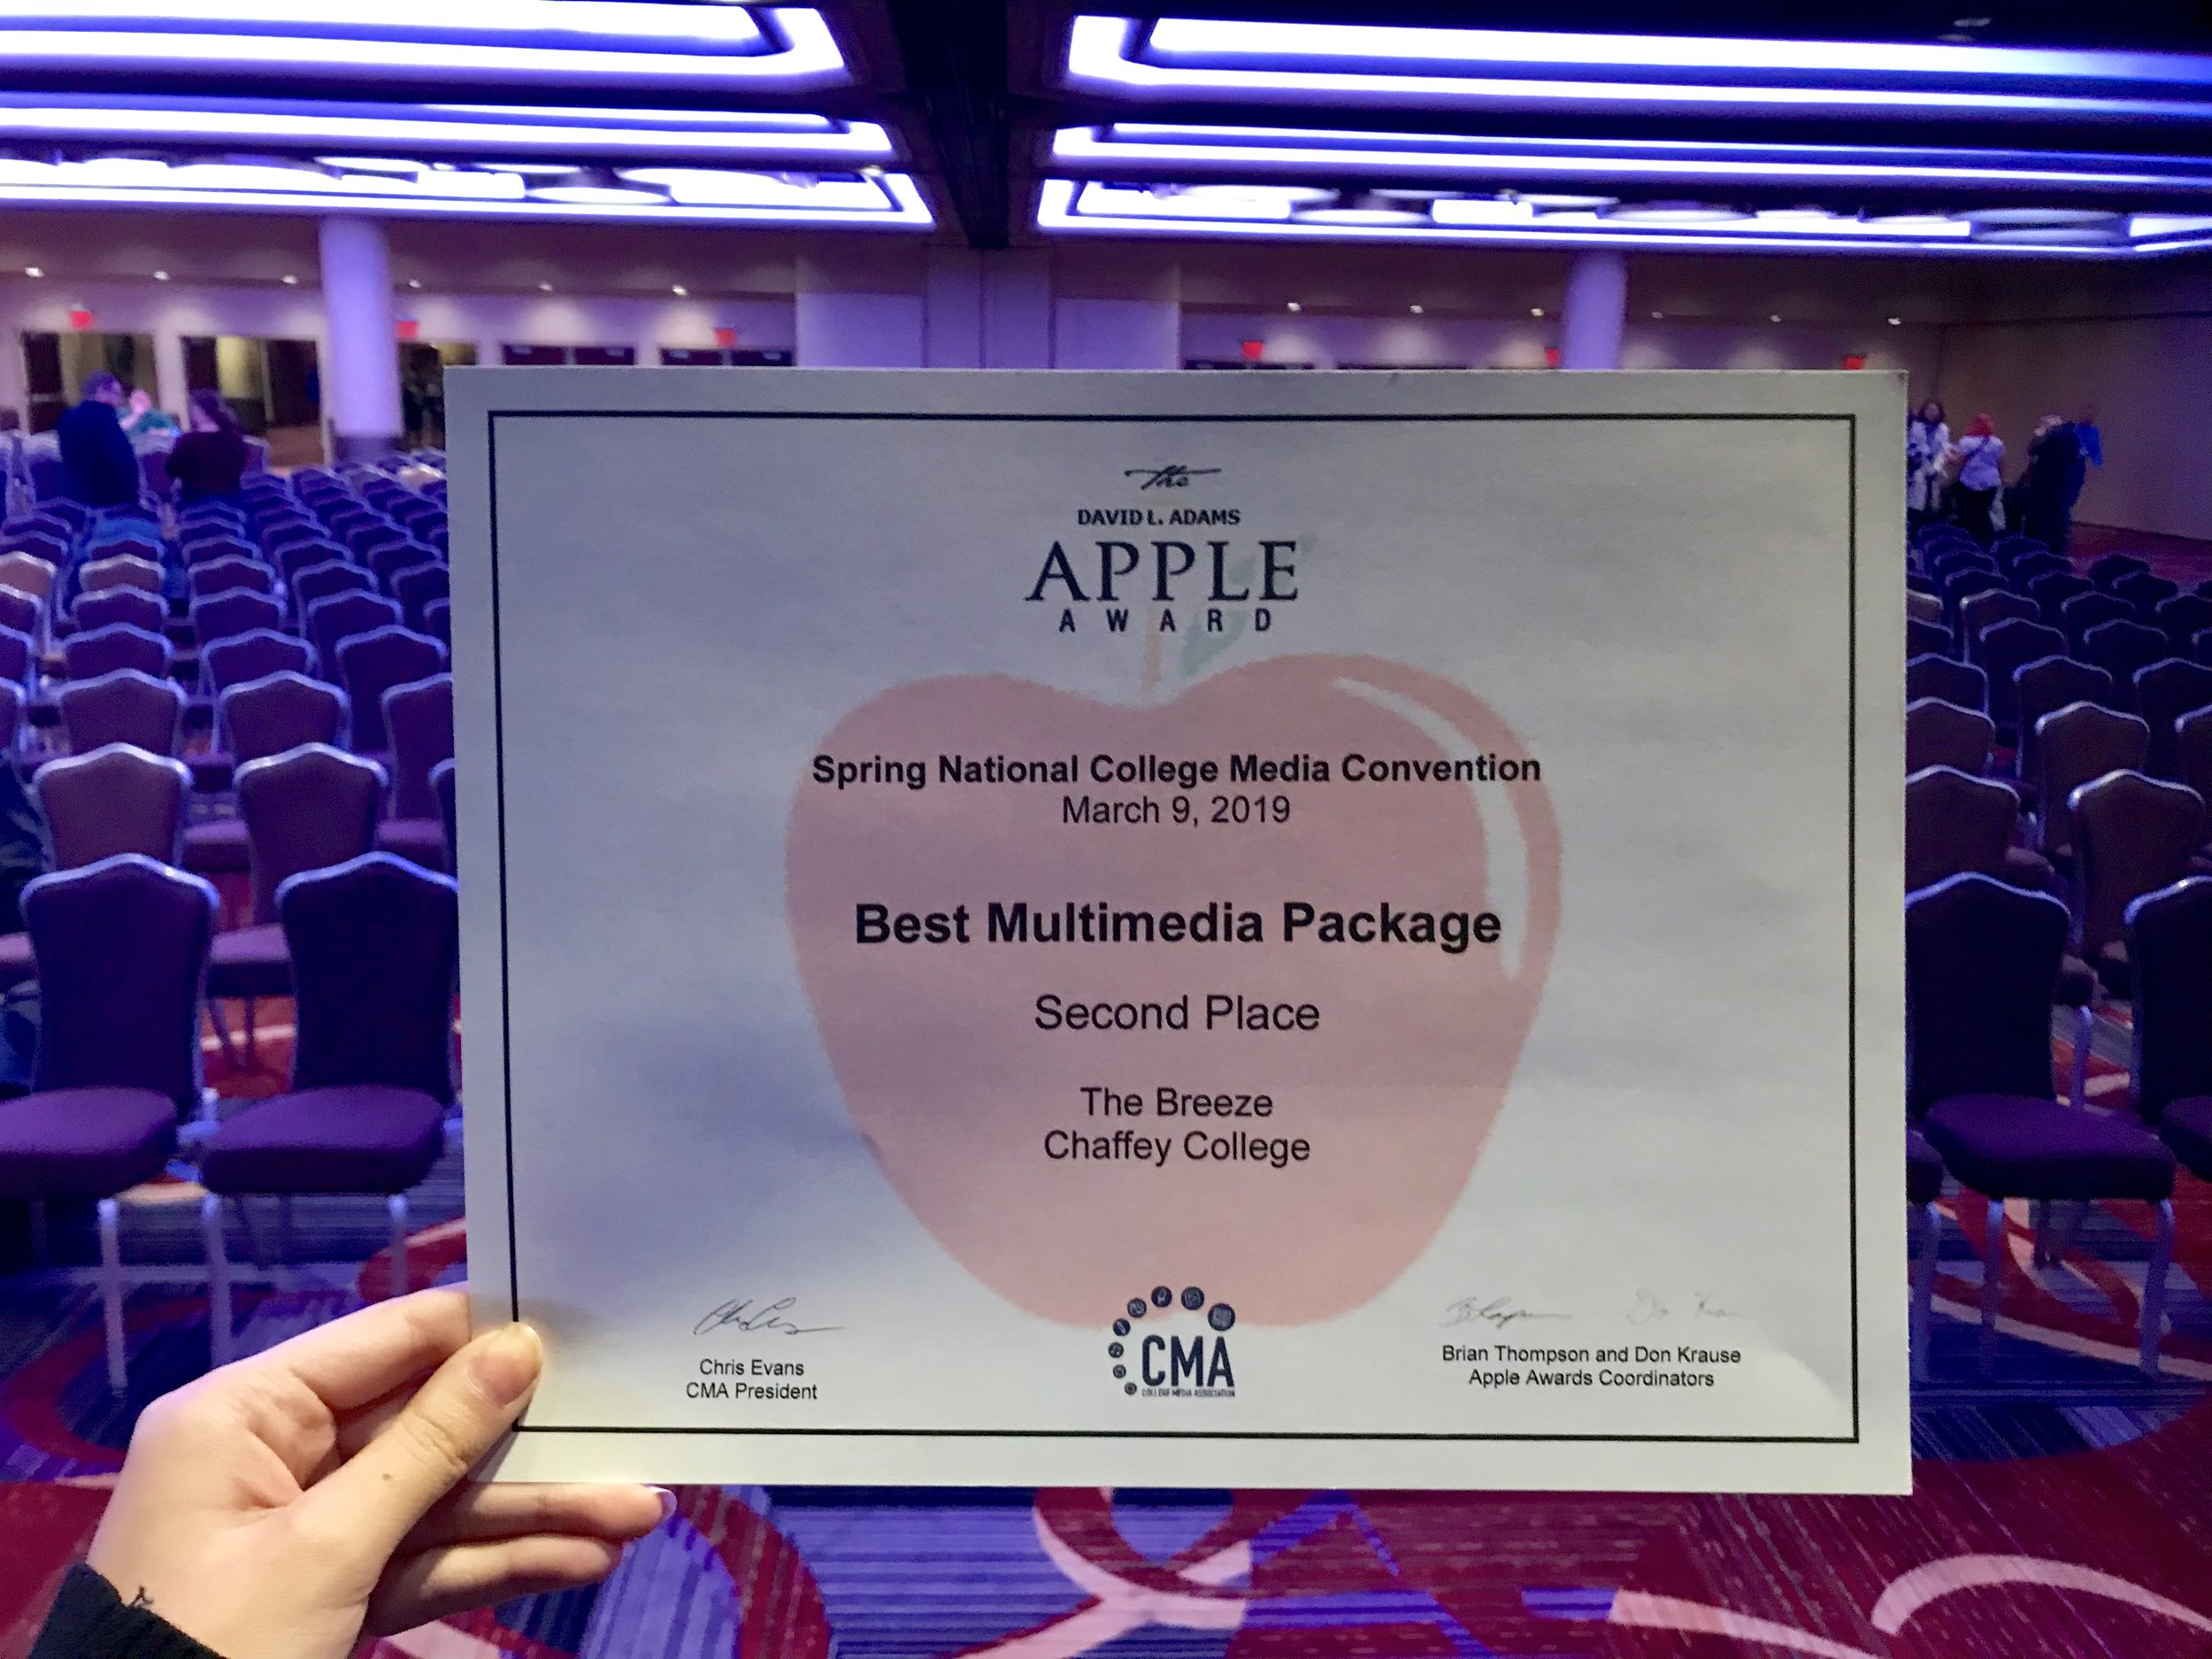 The Breeze is awarded Second Place for Best Multimedia Package at the Spring National College Media Convention. Photo by Paris Barraza.